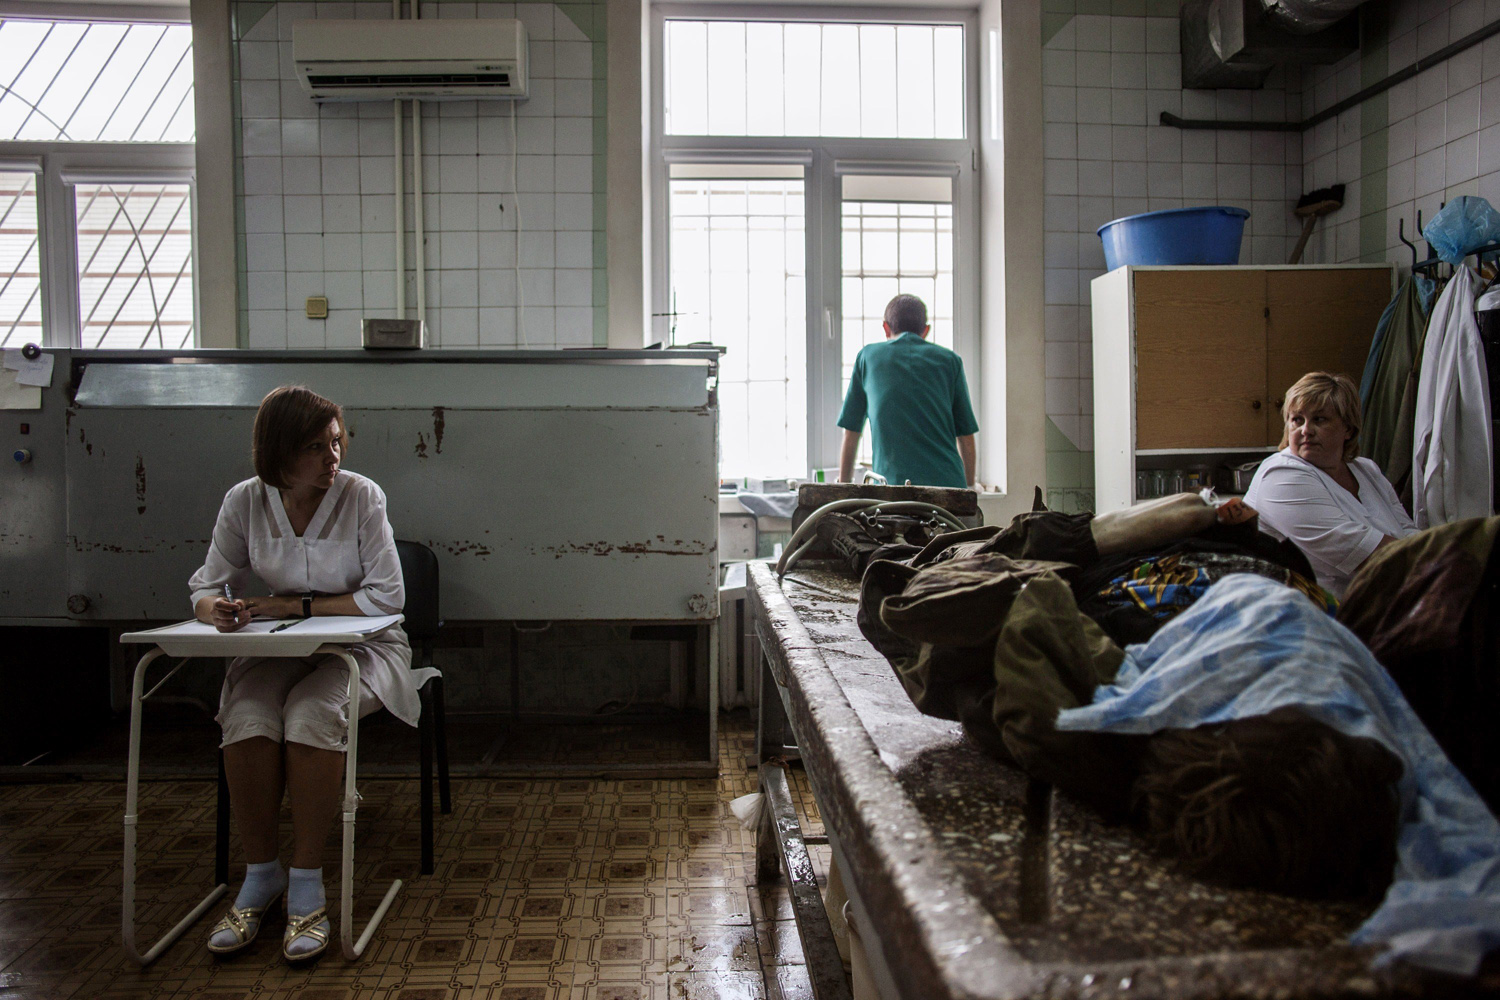 May 27, 2014. Ukrainian medical staff prepare to clean the body of a killed pro-Russian fighter at the Kalinina morgue in the eastern Ukrainian city of Donetsk.